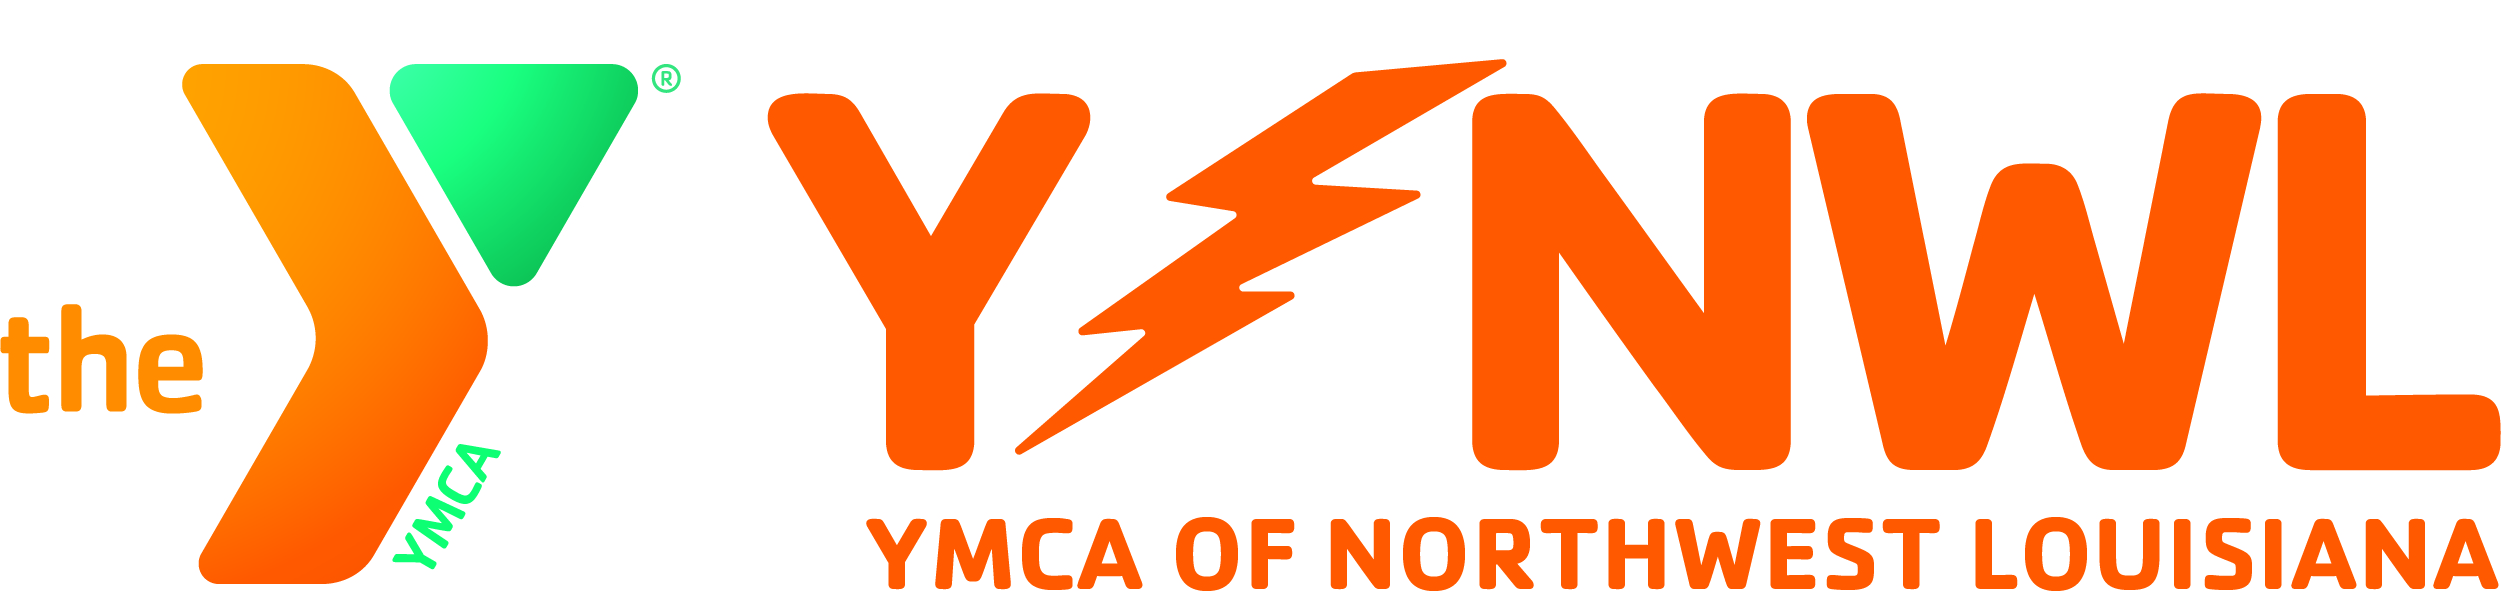 YMCA of NORTHWEST LOUISIANA